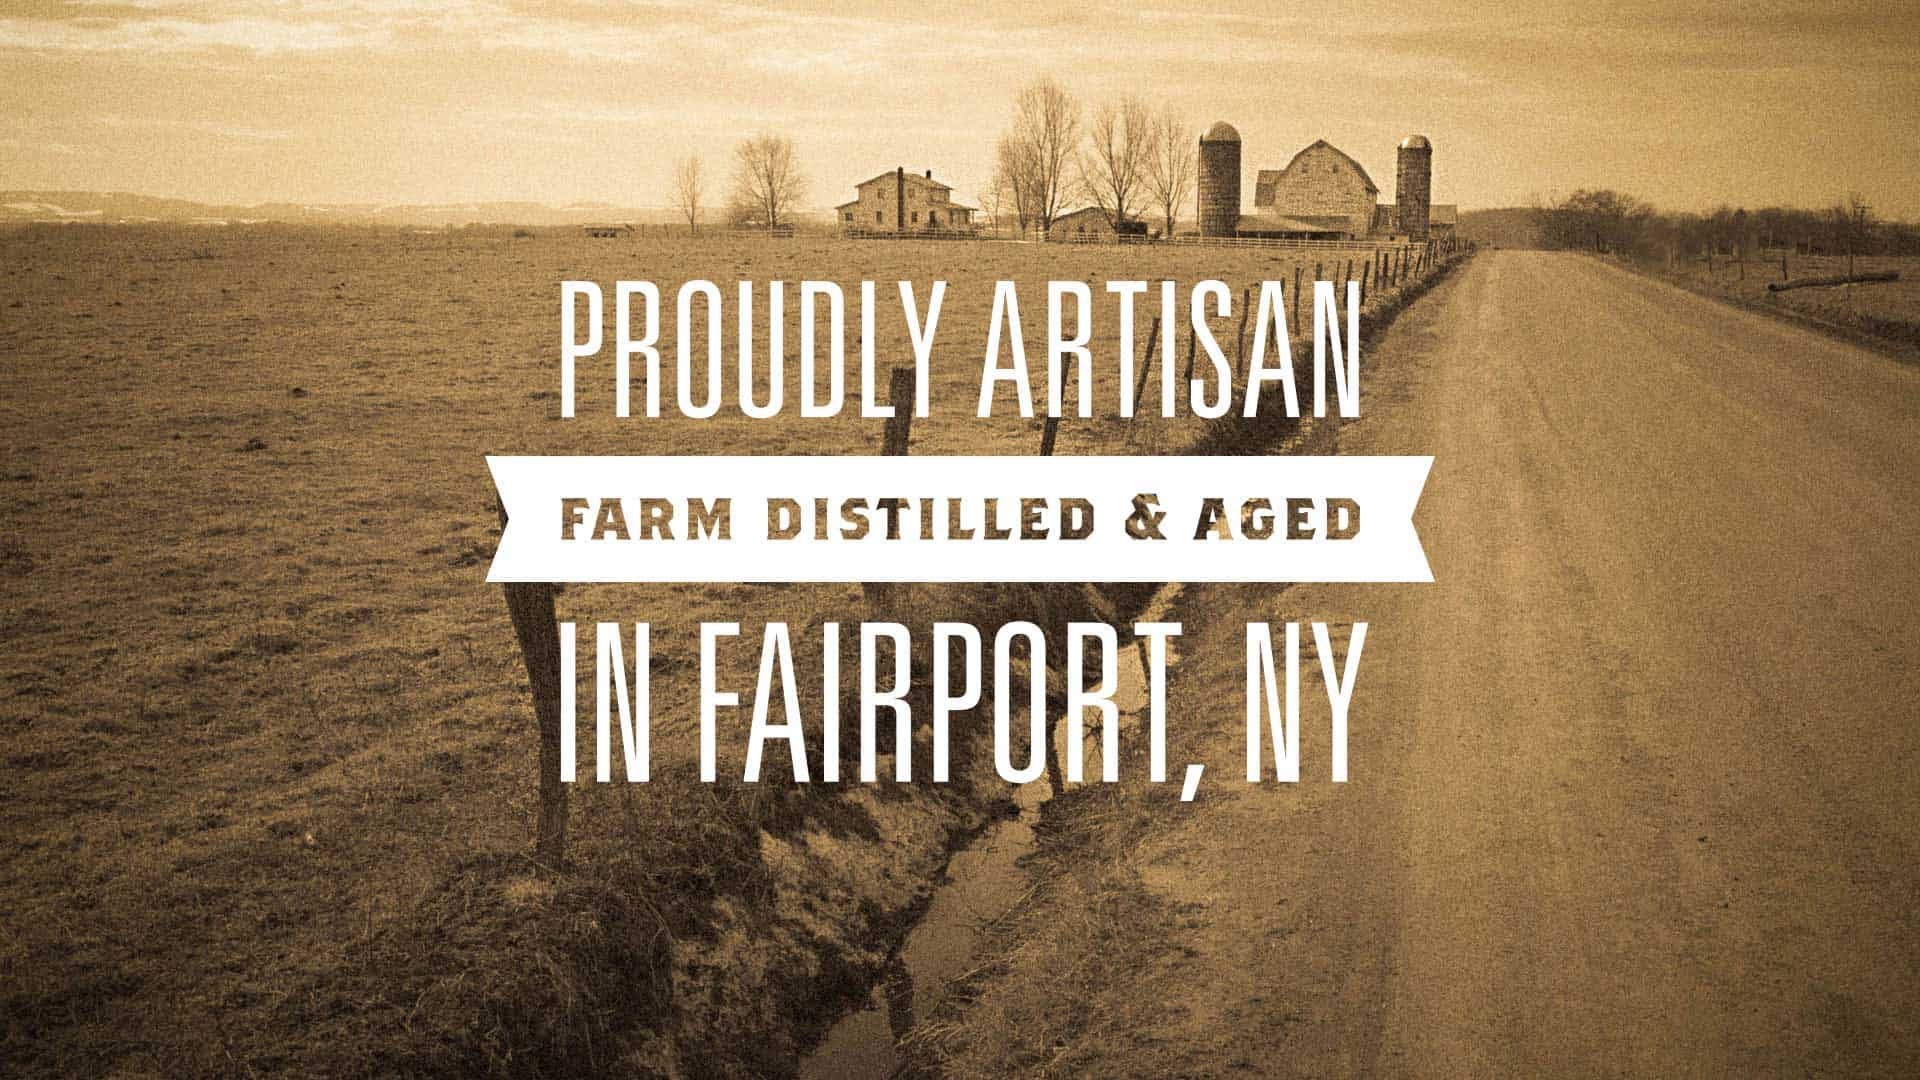 Proudly Artisan Farm Distilled and Aged in Fairport, NY